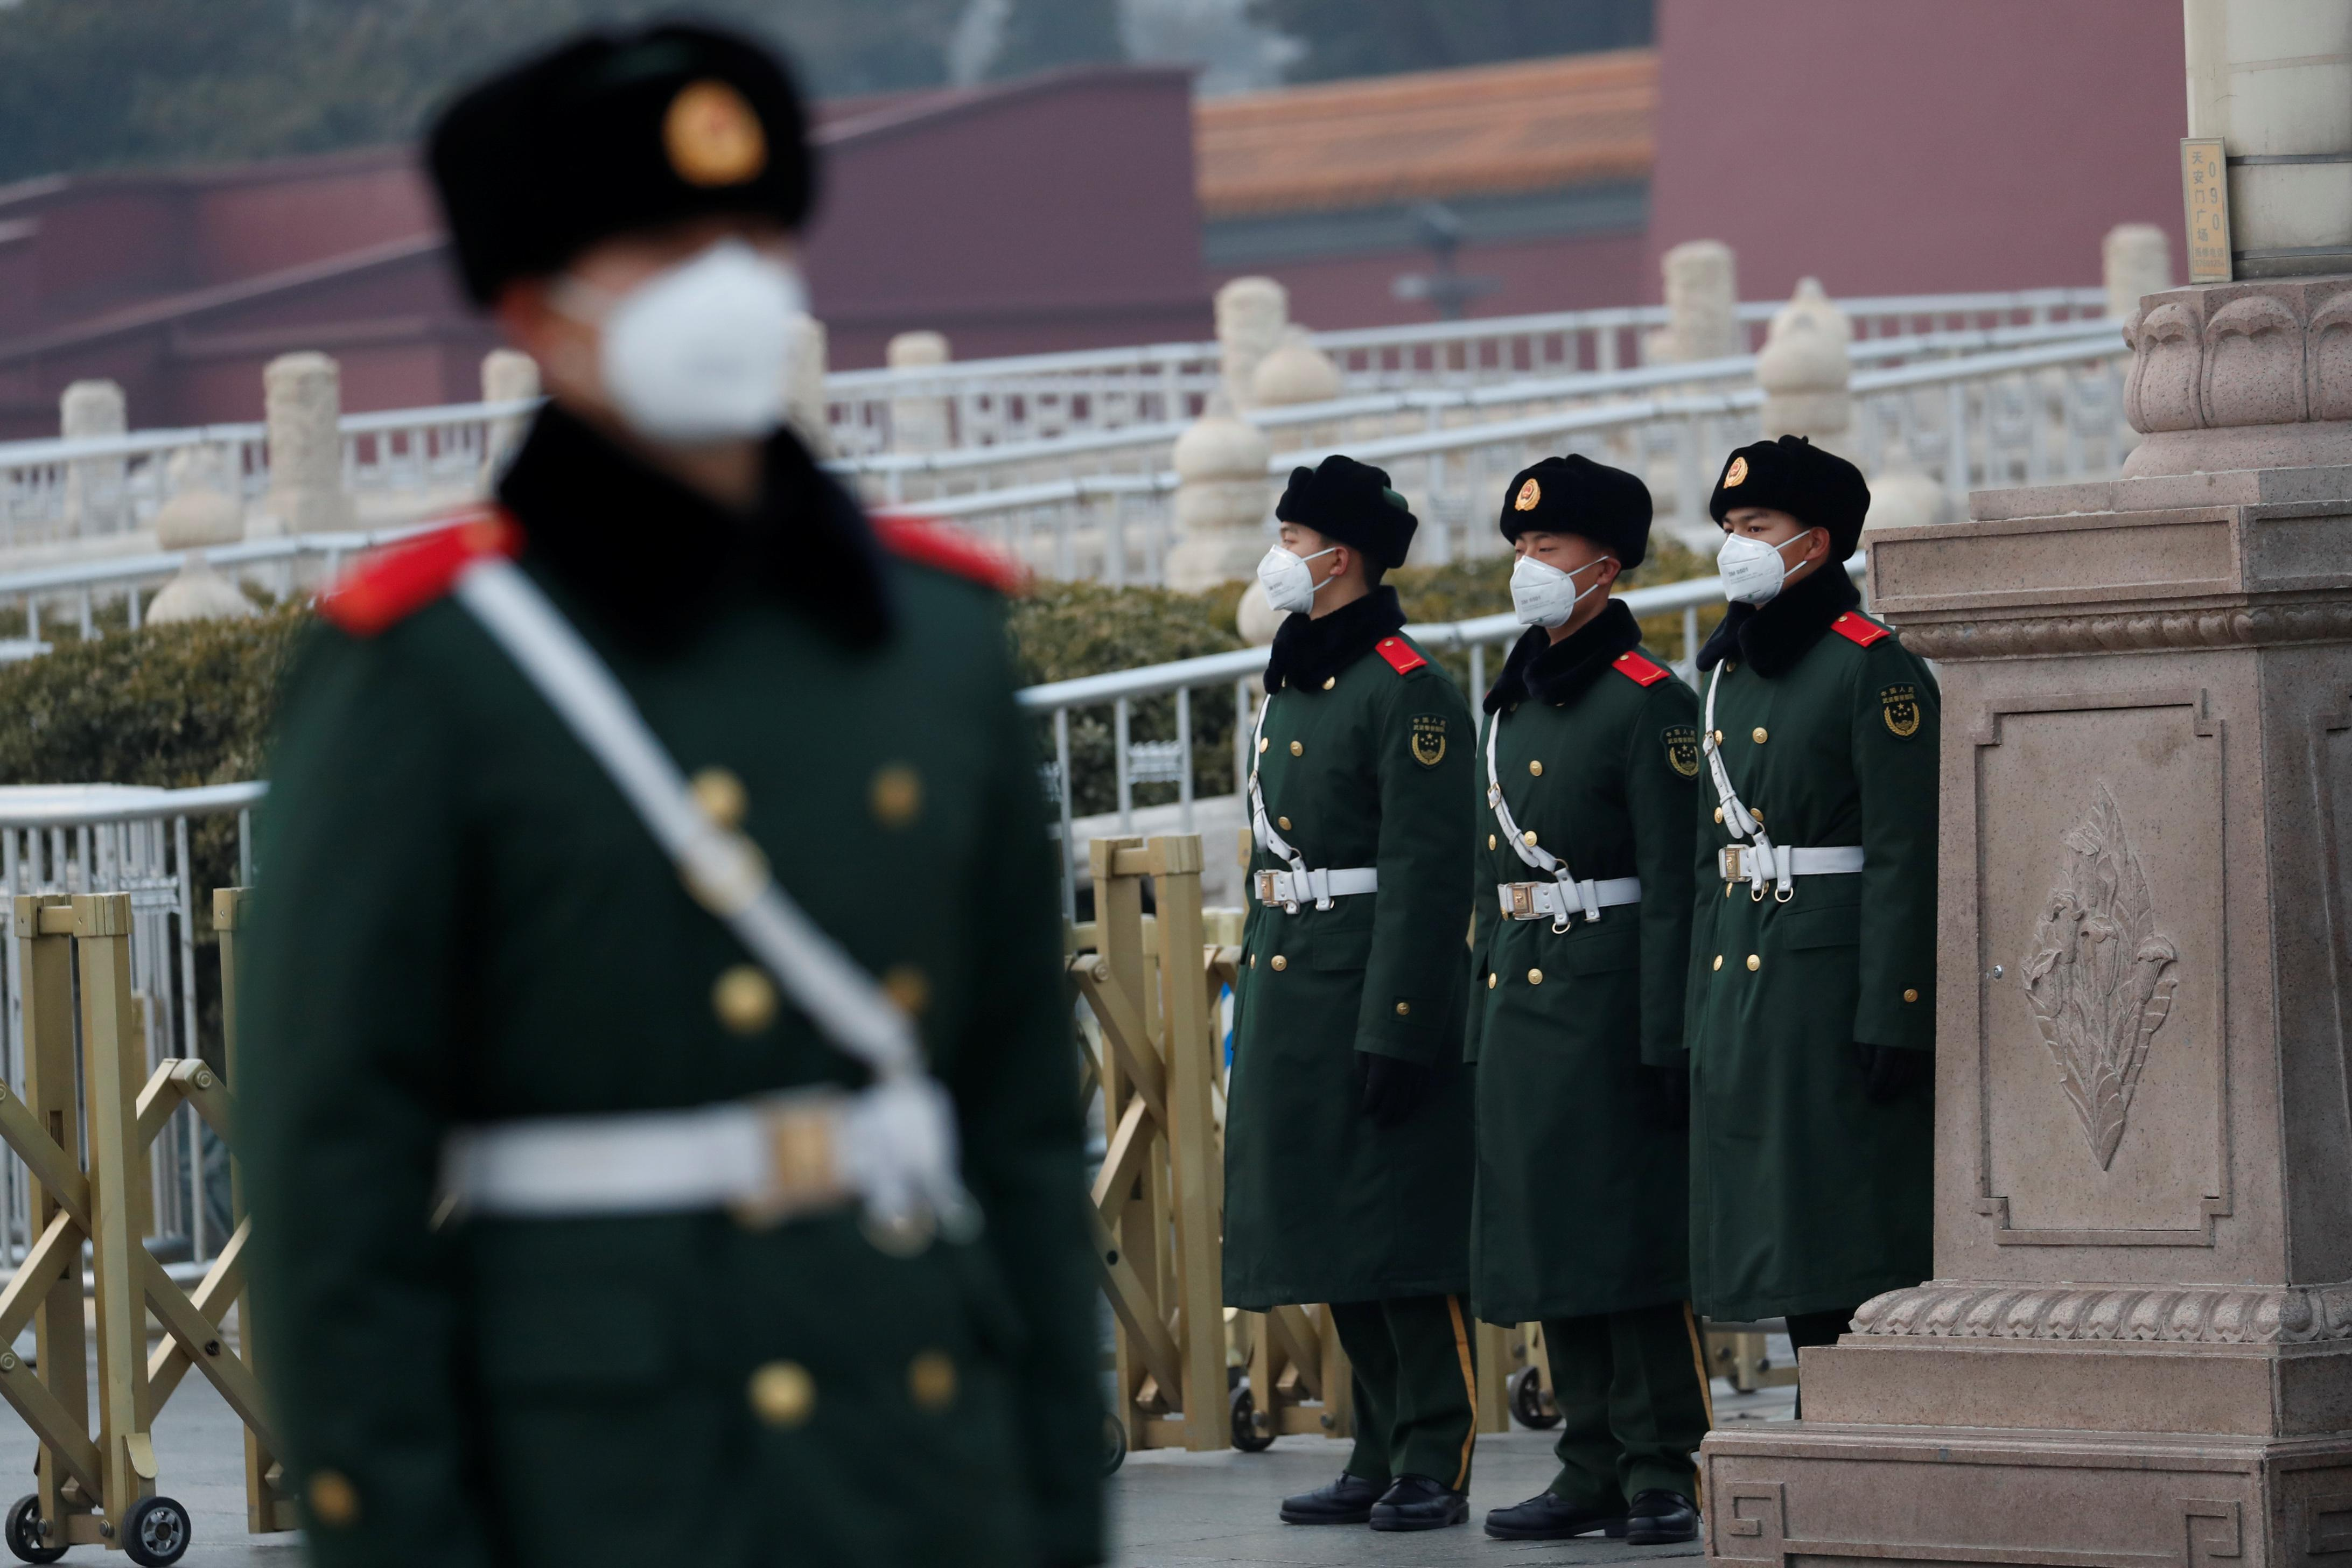 Paramilitary officers wearing face masks stand guard at the Tiananmen Gate, as the country is hit by an outbreak of the new coronavirus, in Beijing, China January 27, 2020. REUTERS/Carlos Garcia Rawlins